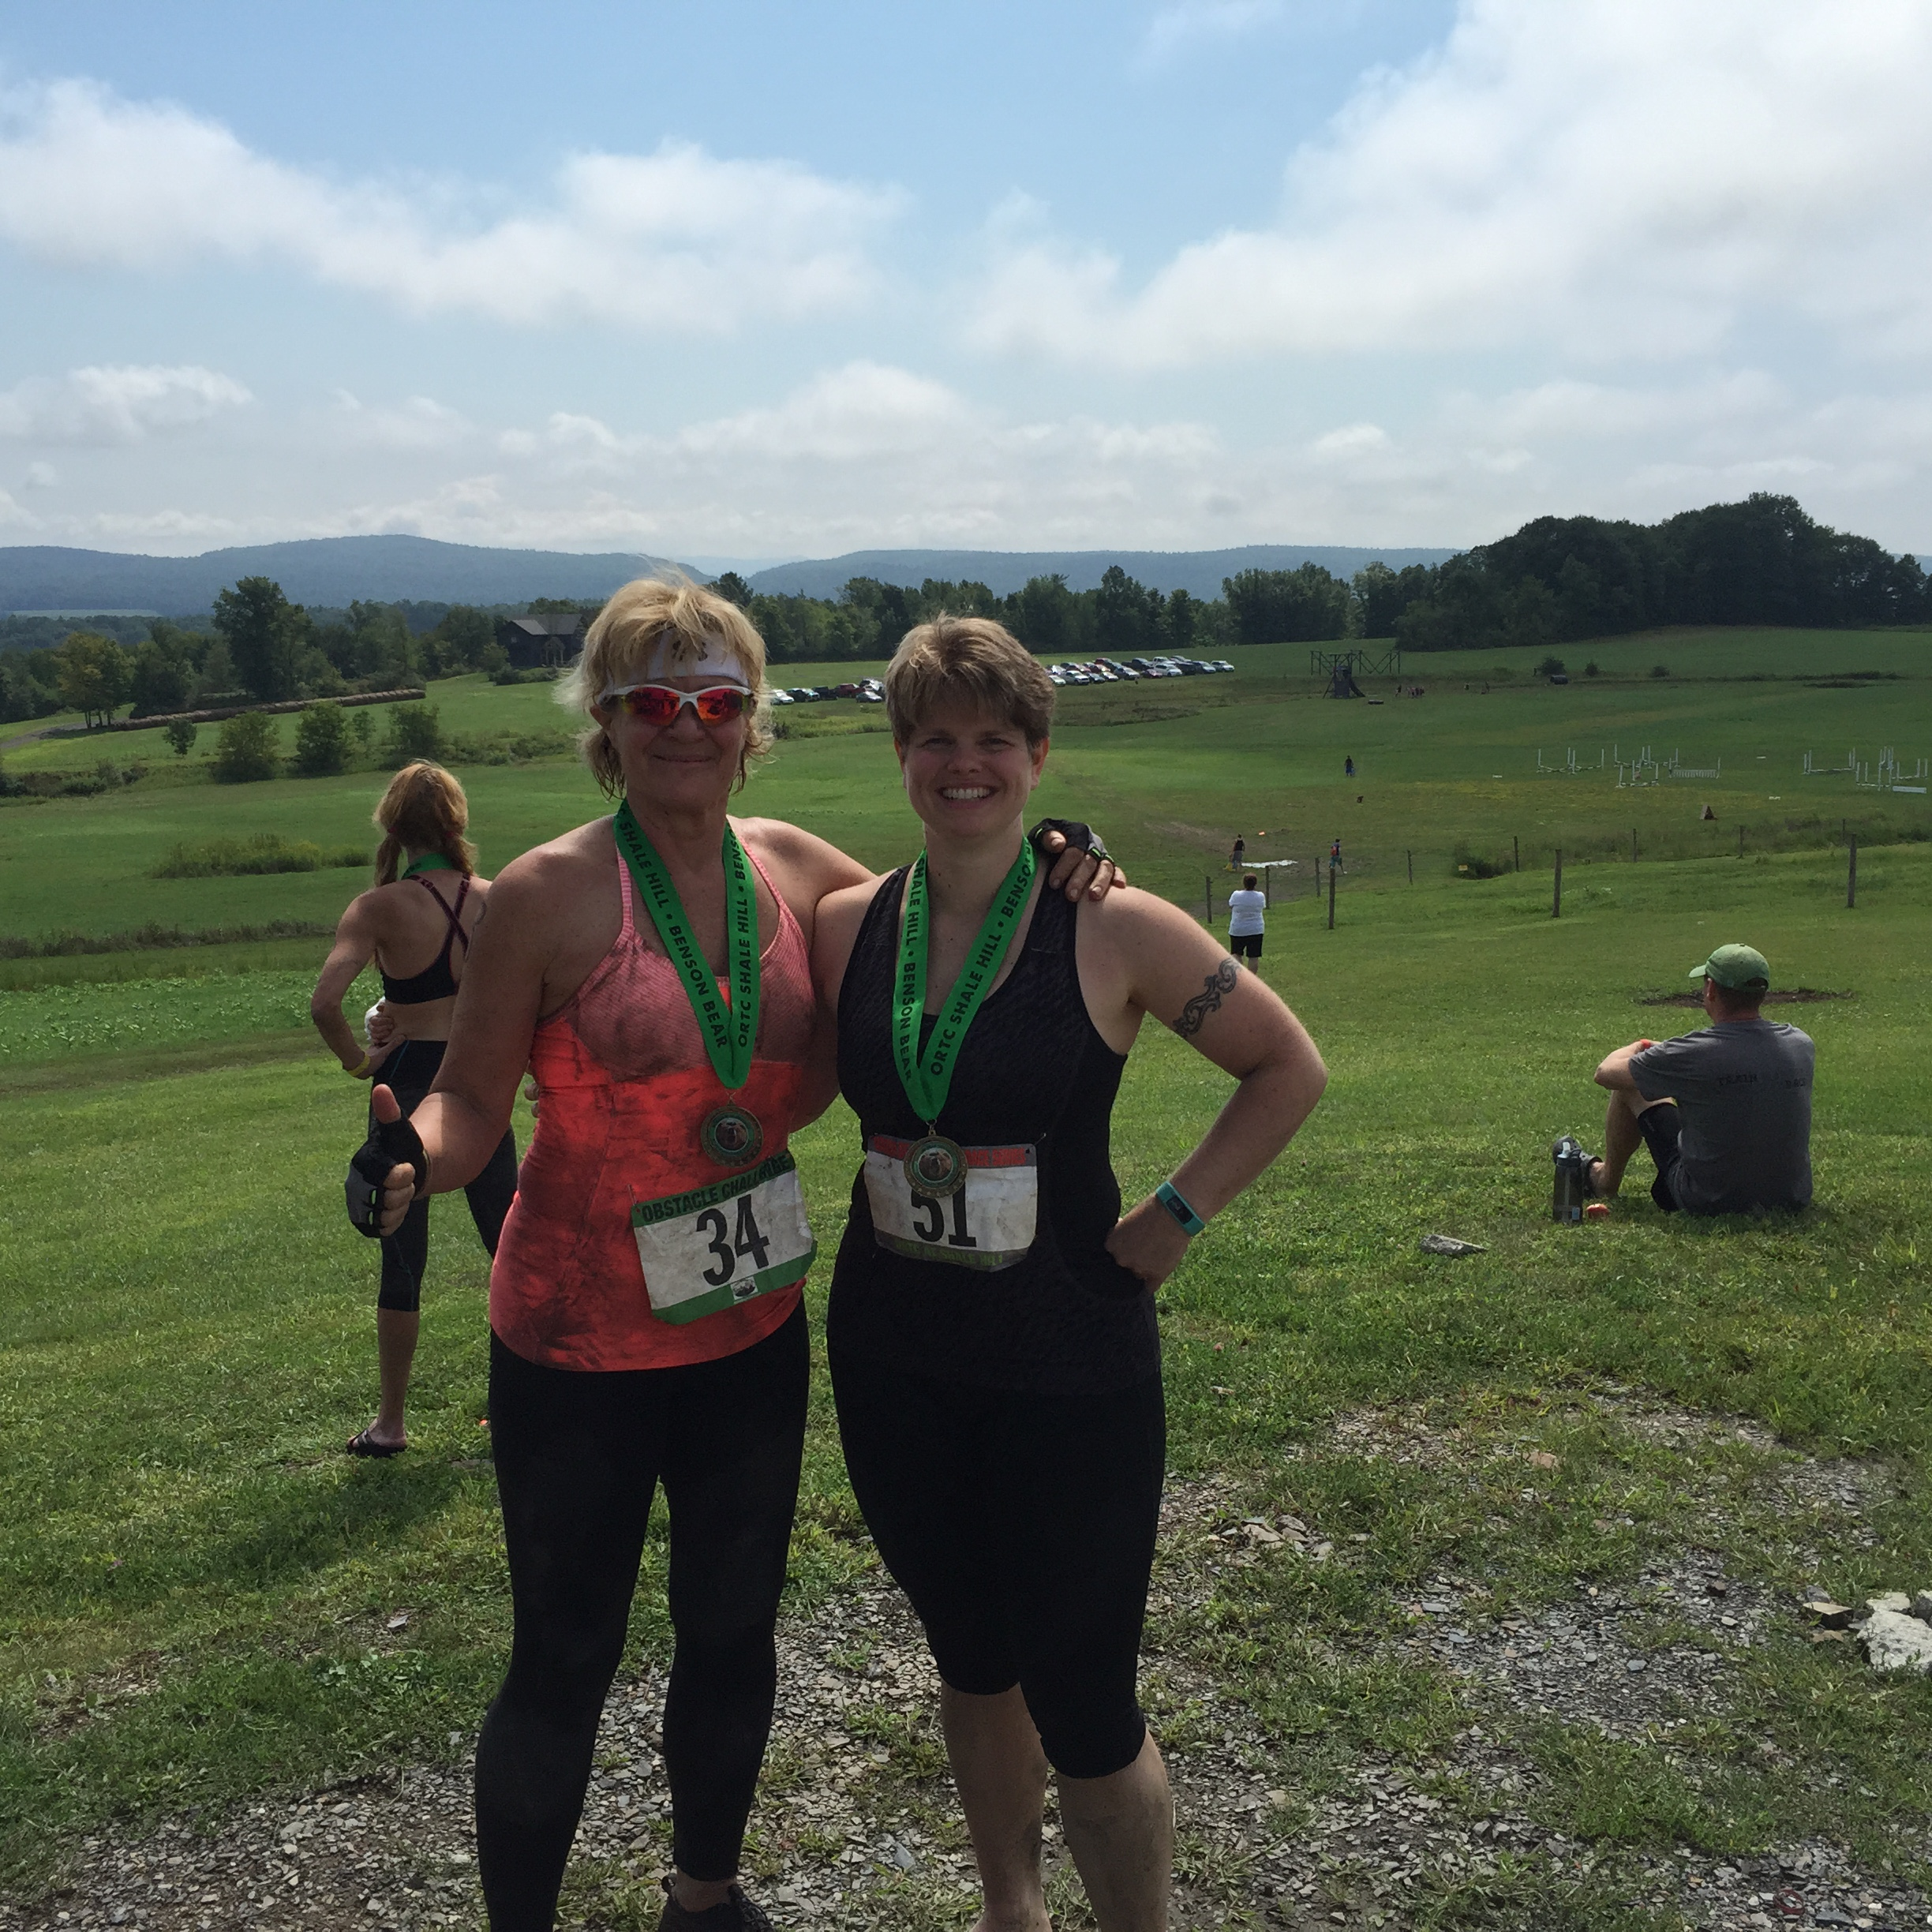 Lee and I after completing the Benson Bear Obstacle Course Race in August 2015.